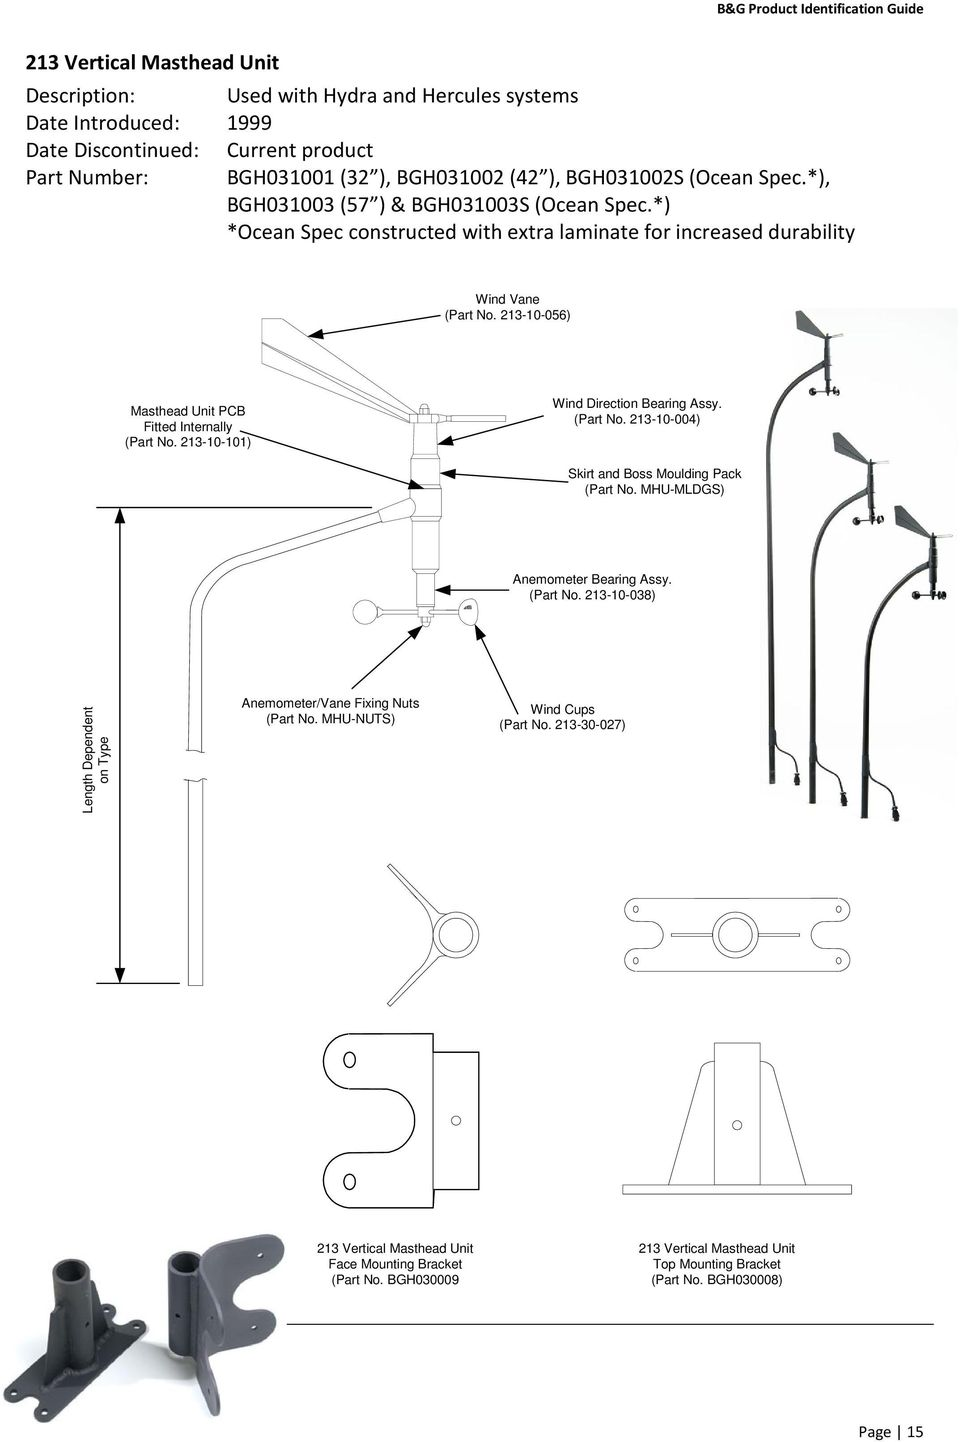 Product Identification Guide Pdf Hercules Foot Switch Wiring Diagram 213 10 101 Wind Direction Bearing Assy Part No